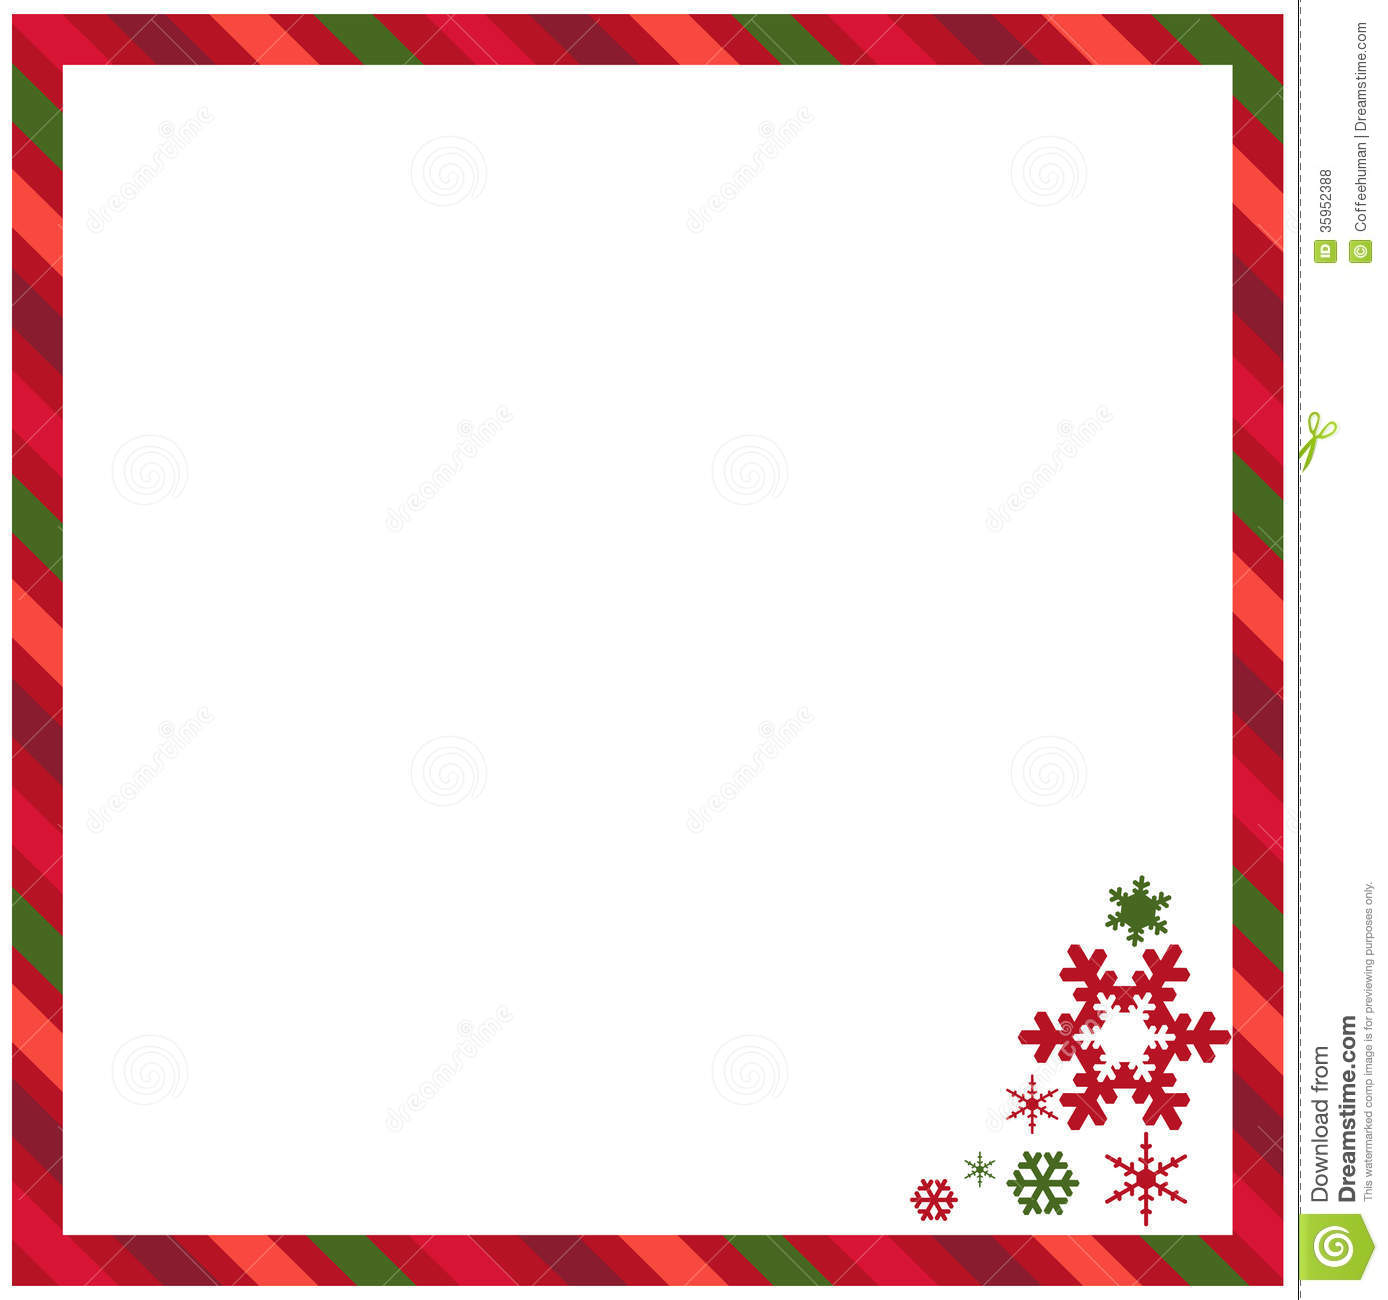 Free Photoshop Christmas Frames